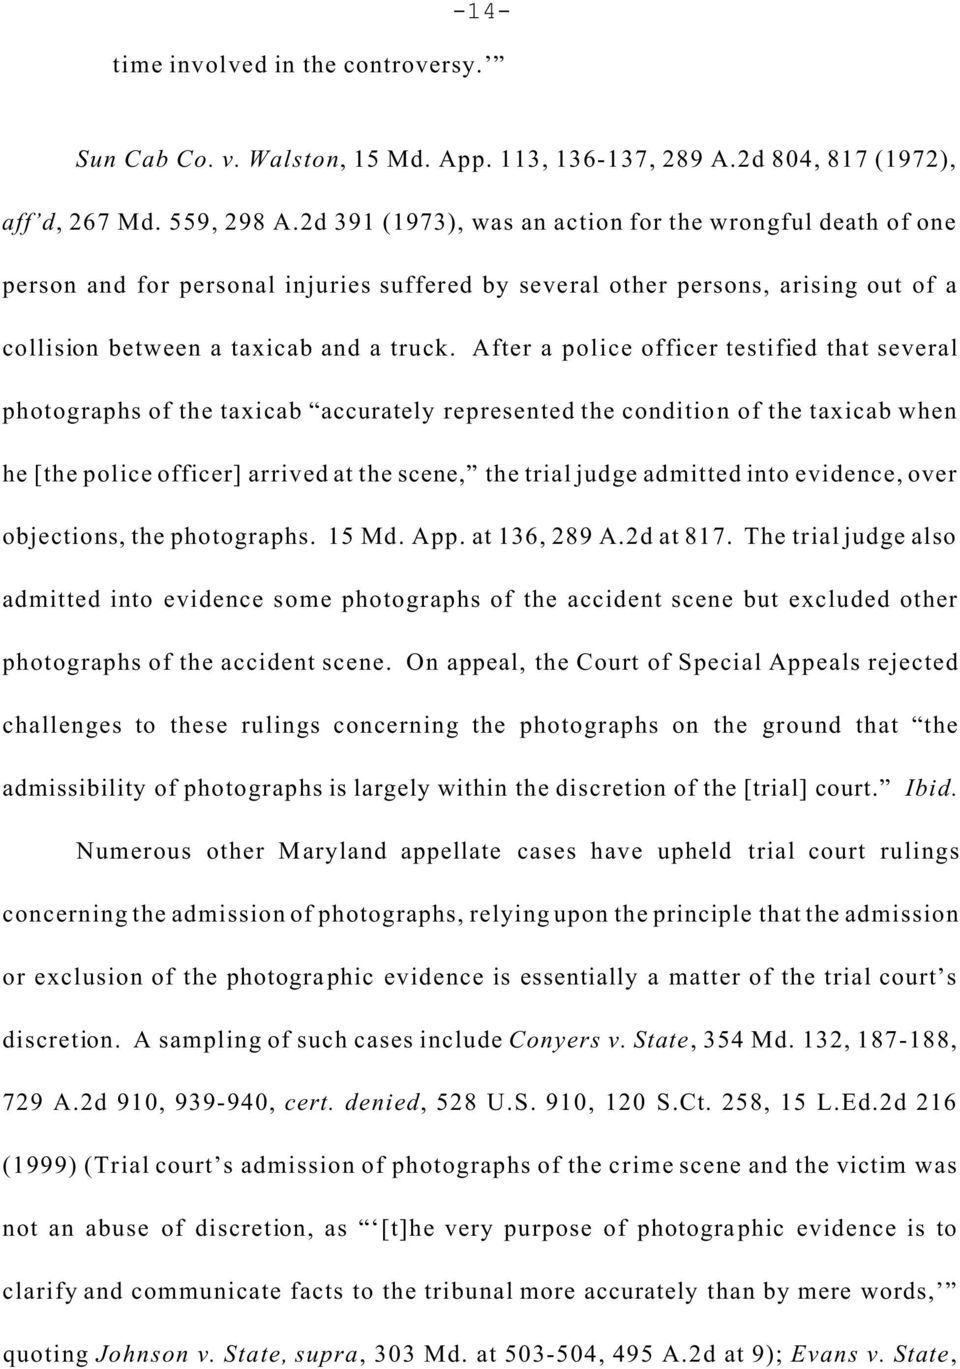 After a police officer testified that several photographs of the taxicab accurately represented the condition of the taxicab when he [the police officer] arrived at the scene, the trial judge